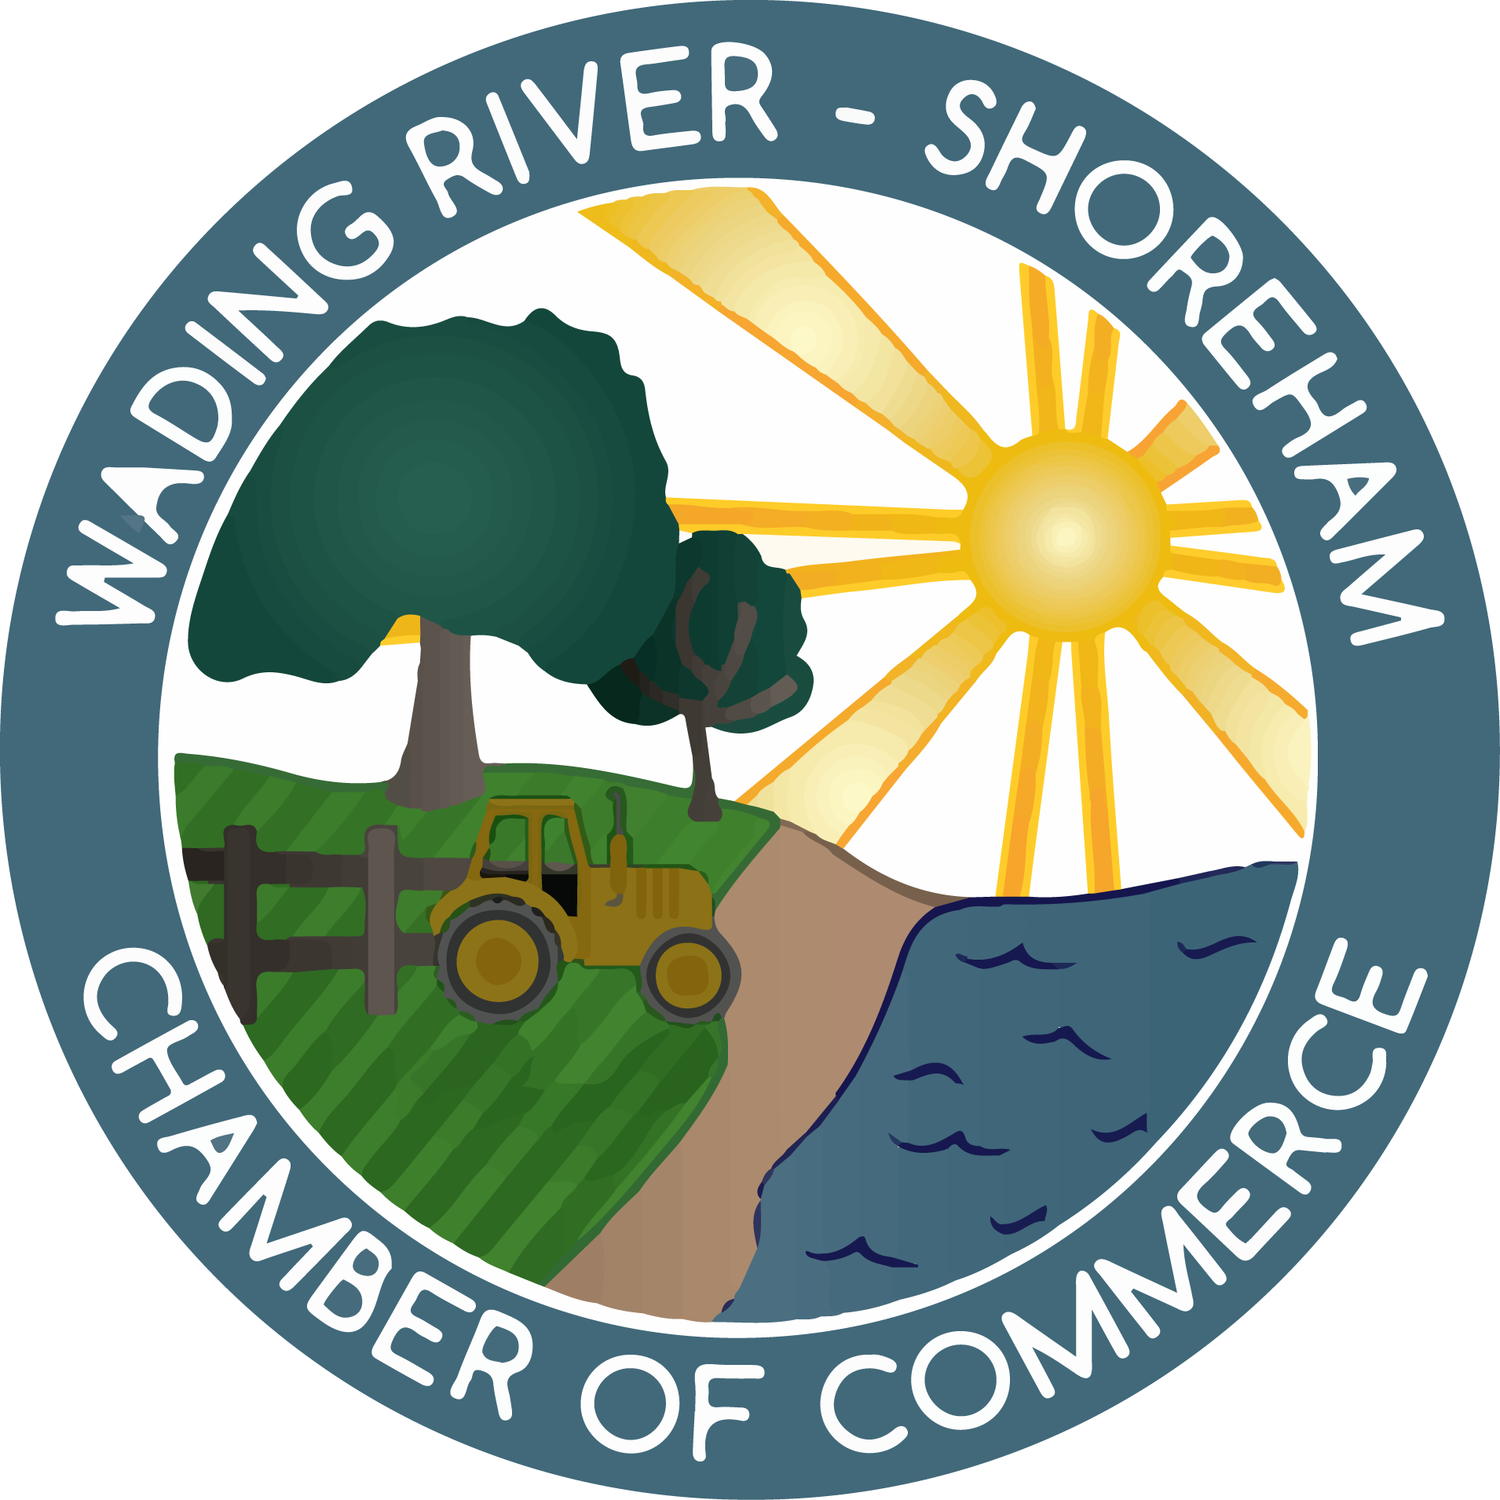 Wading River Shoreham Chamber of Commerce